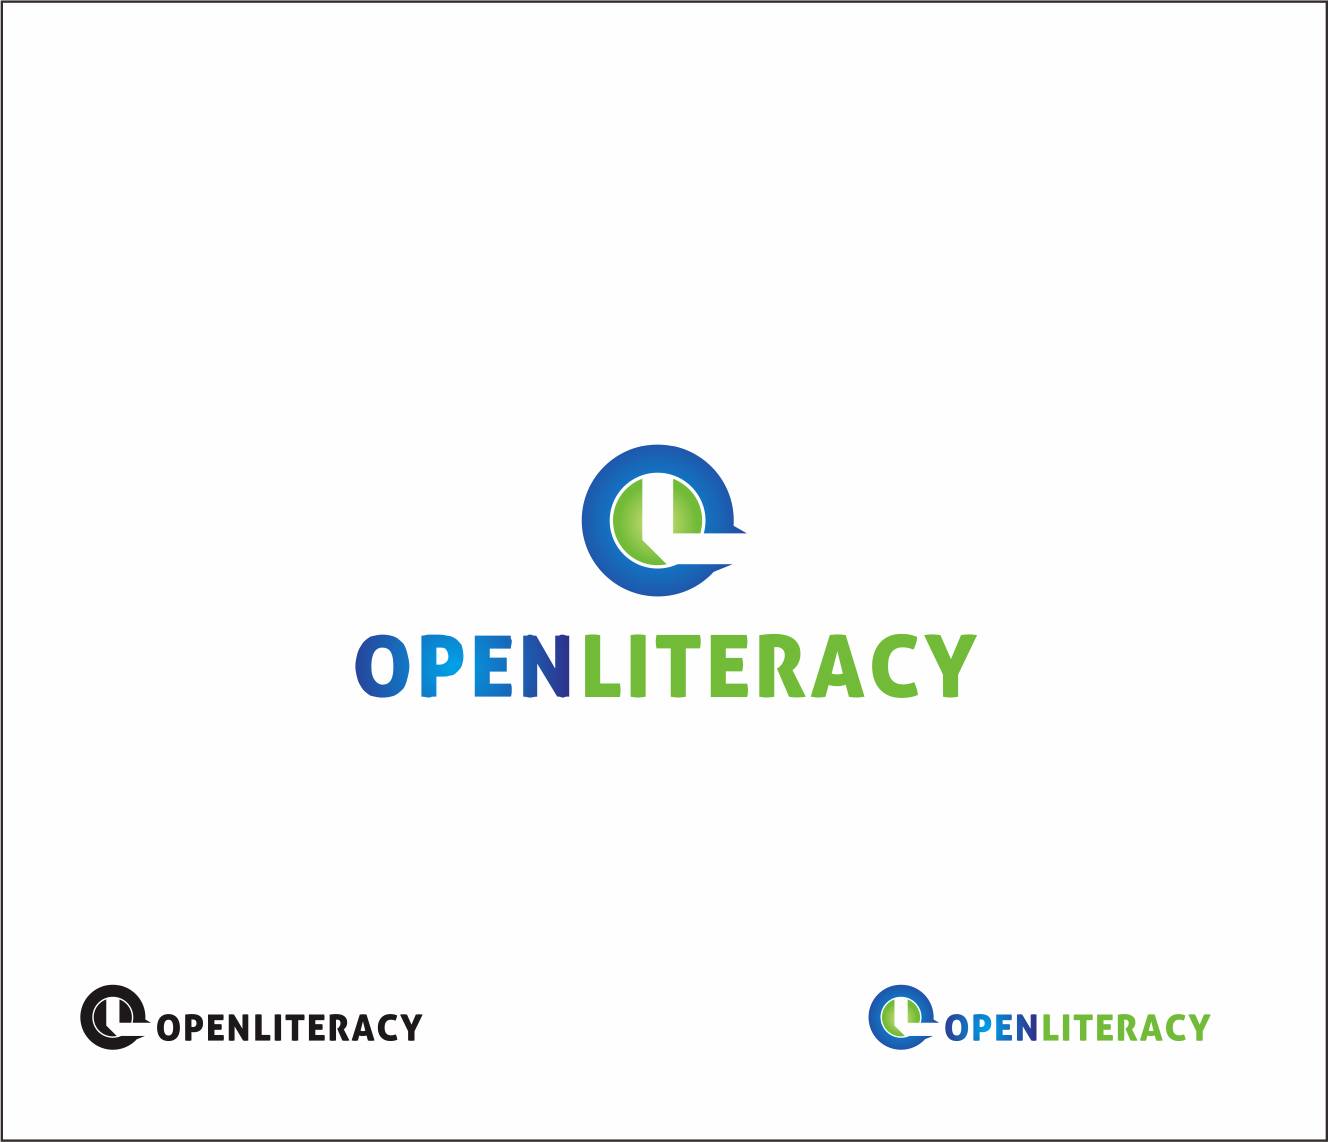 Logo Design by Armada Jamaluddin - Entry No. 88 in the Logo Design Contest Inspiring Logo Design for OpenLiteracy.